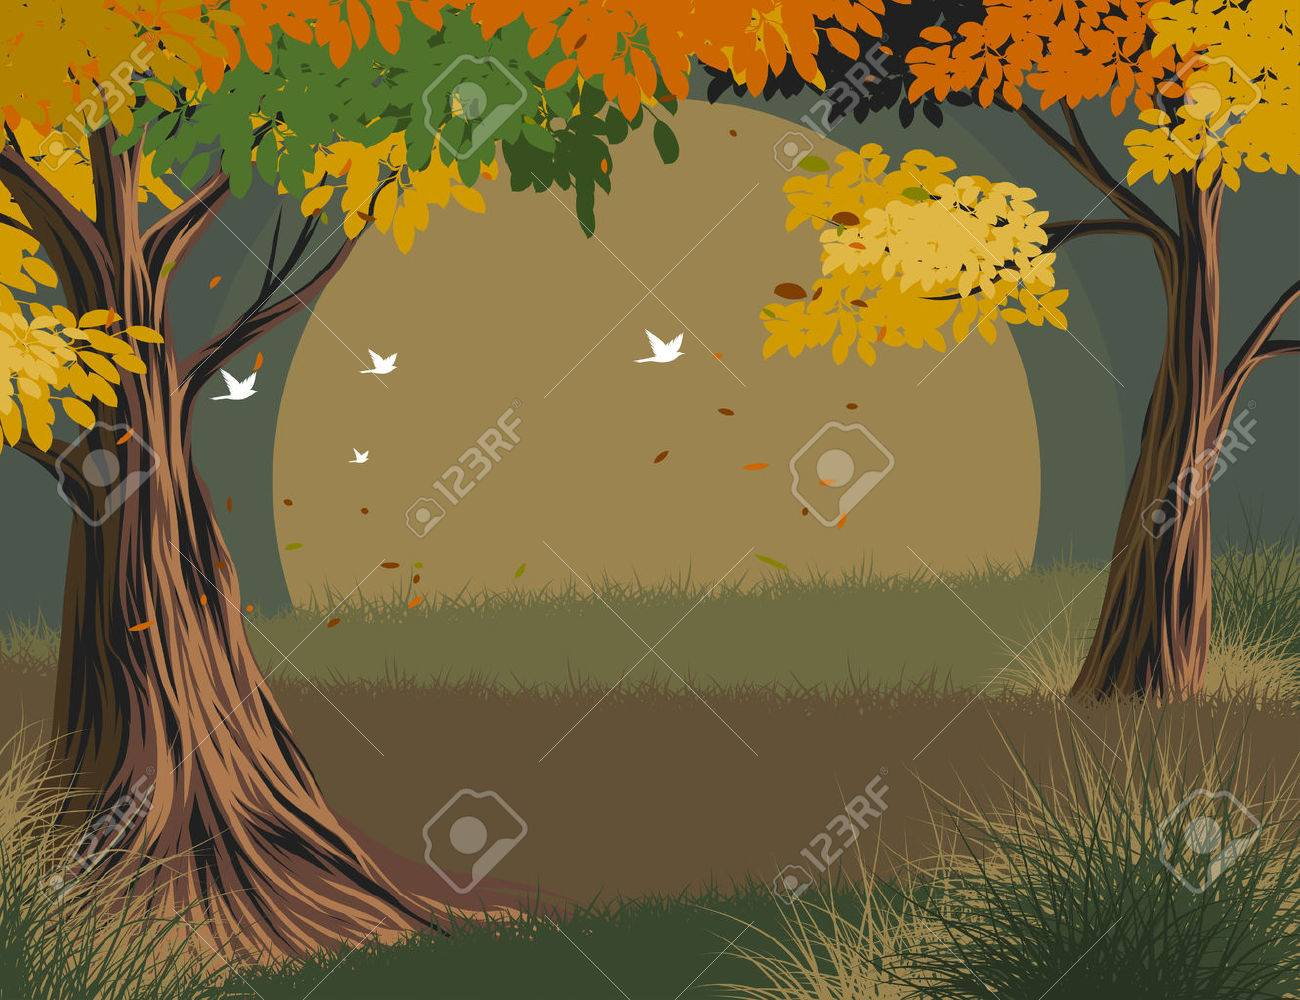 Leaves falling seasonal scene vector nature landscape background Stock Vector - 75393909